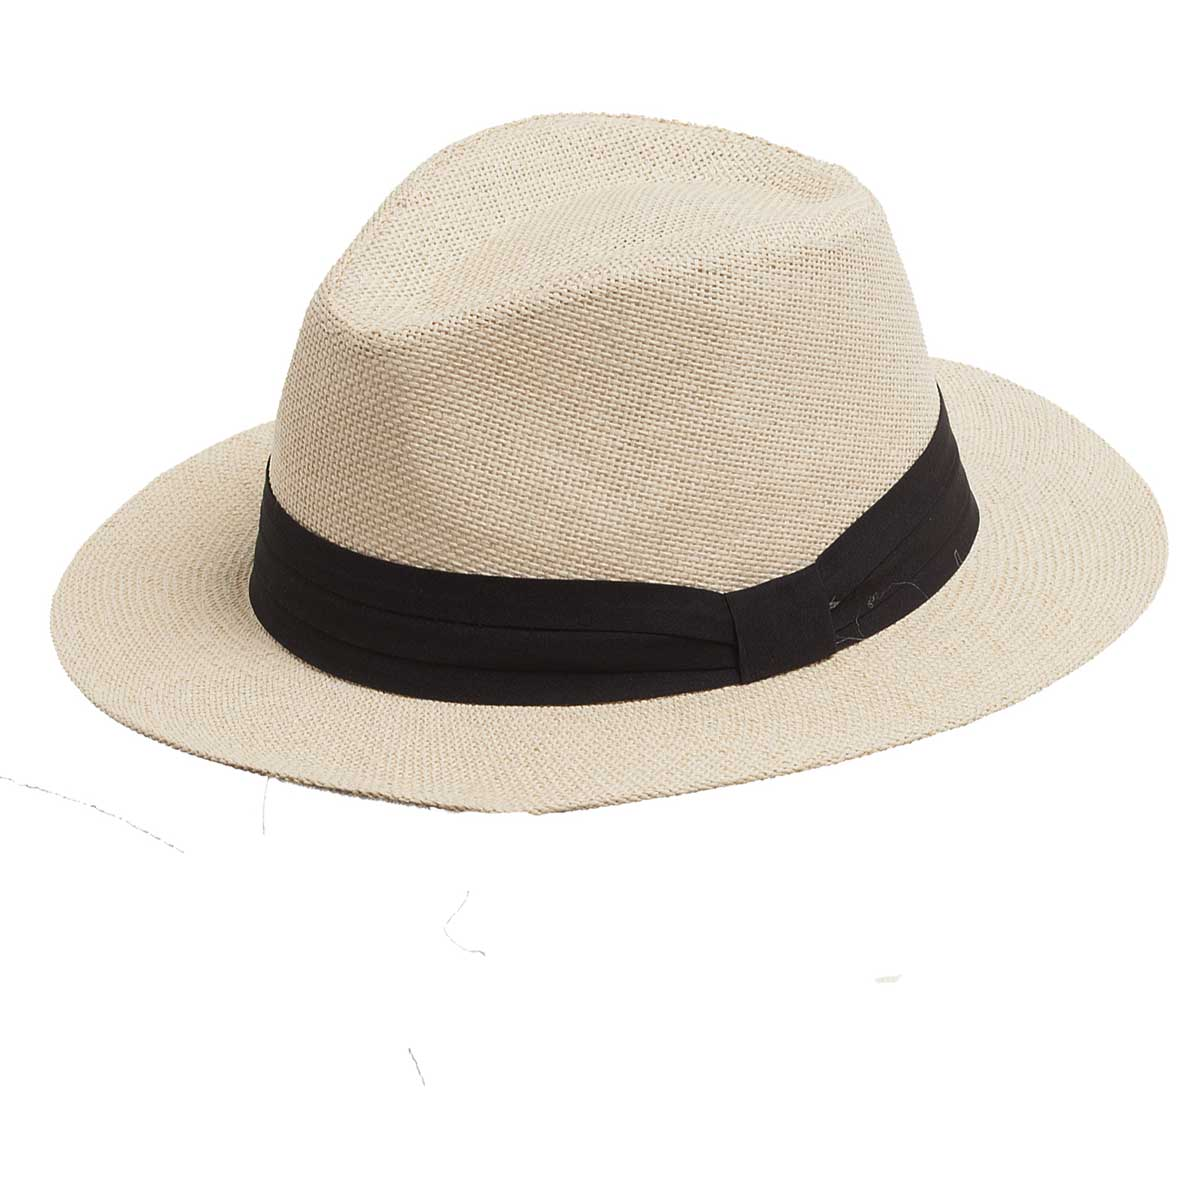 Tan Panama Hat *30sp